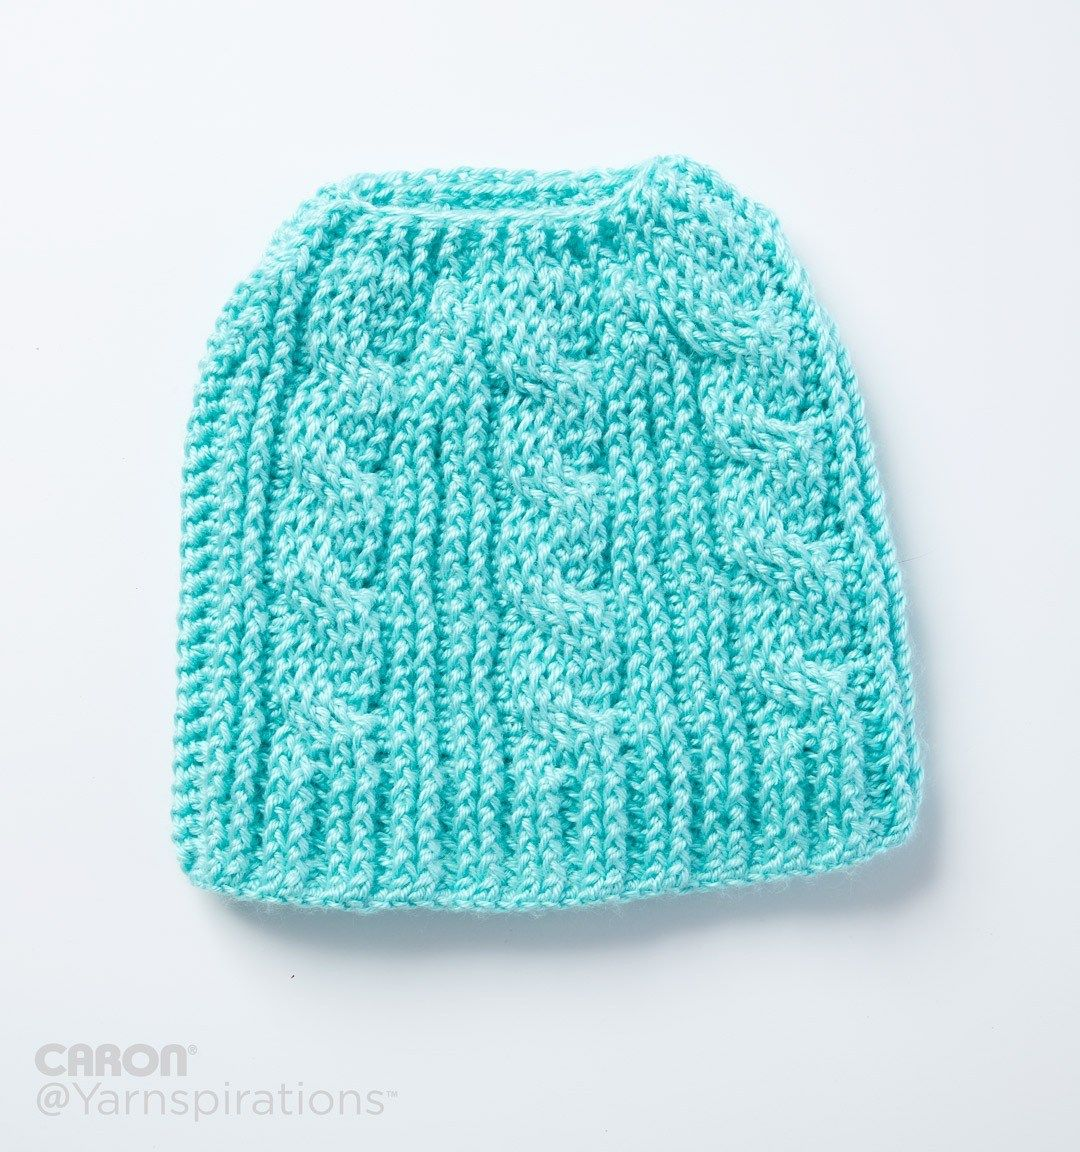 Crochet Hat Patterns that Look like Knit | Pinterest